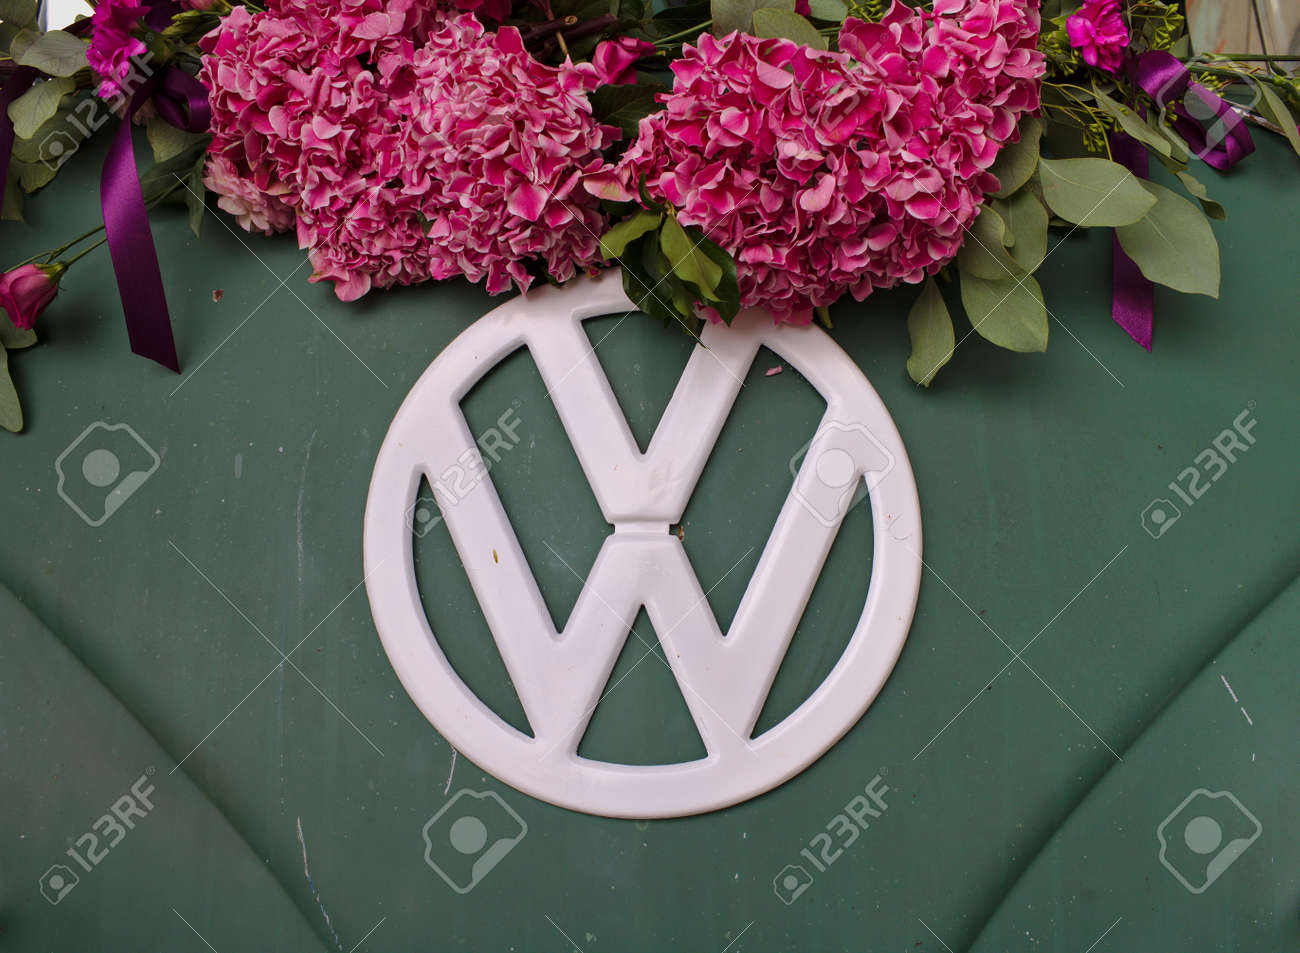 Bremen Germany July 17th 2018 Close Up Photo Of The Front Of A Green Vw T3 Van With White Vw Logo Decorated With Pink Flowers